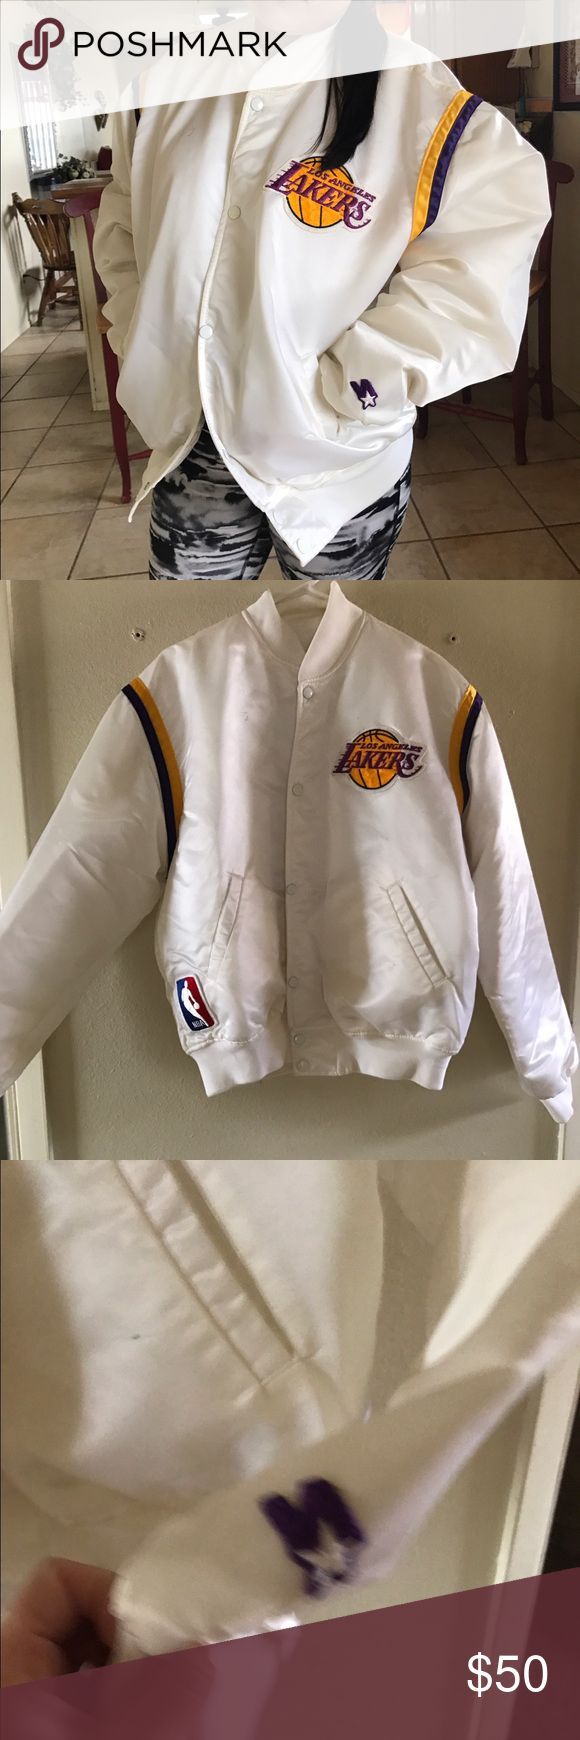 Throwback vintage Starter NBA Lakers jacket💜💛 Original starter jacket from the 90's. Lakers bomber jacket. It is in very good condition just needs to be dry cleaned. Small pen mark in top right front corner. Starter Jackets & Coats Bomber & Varsity